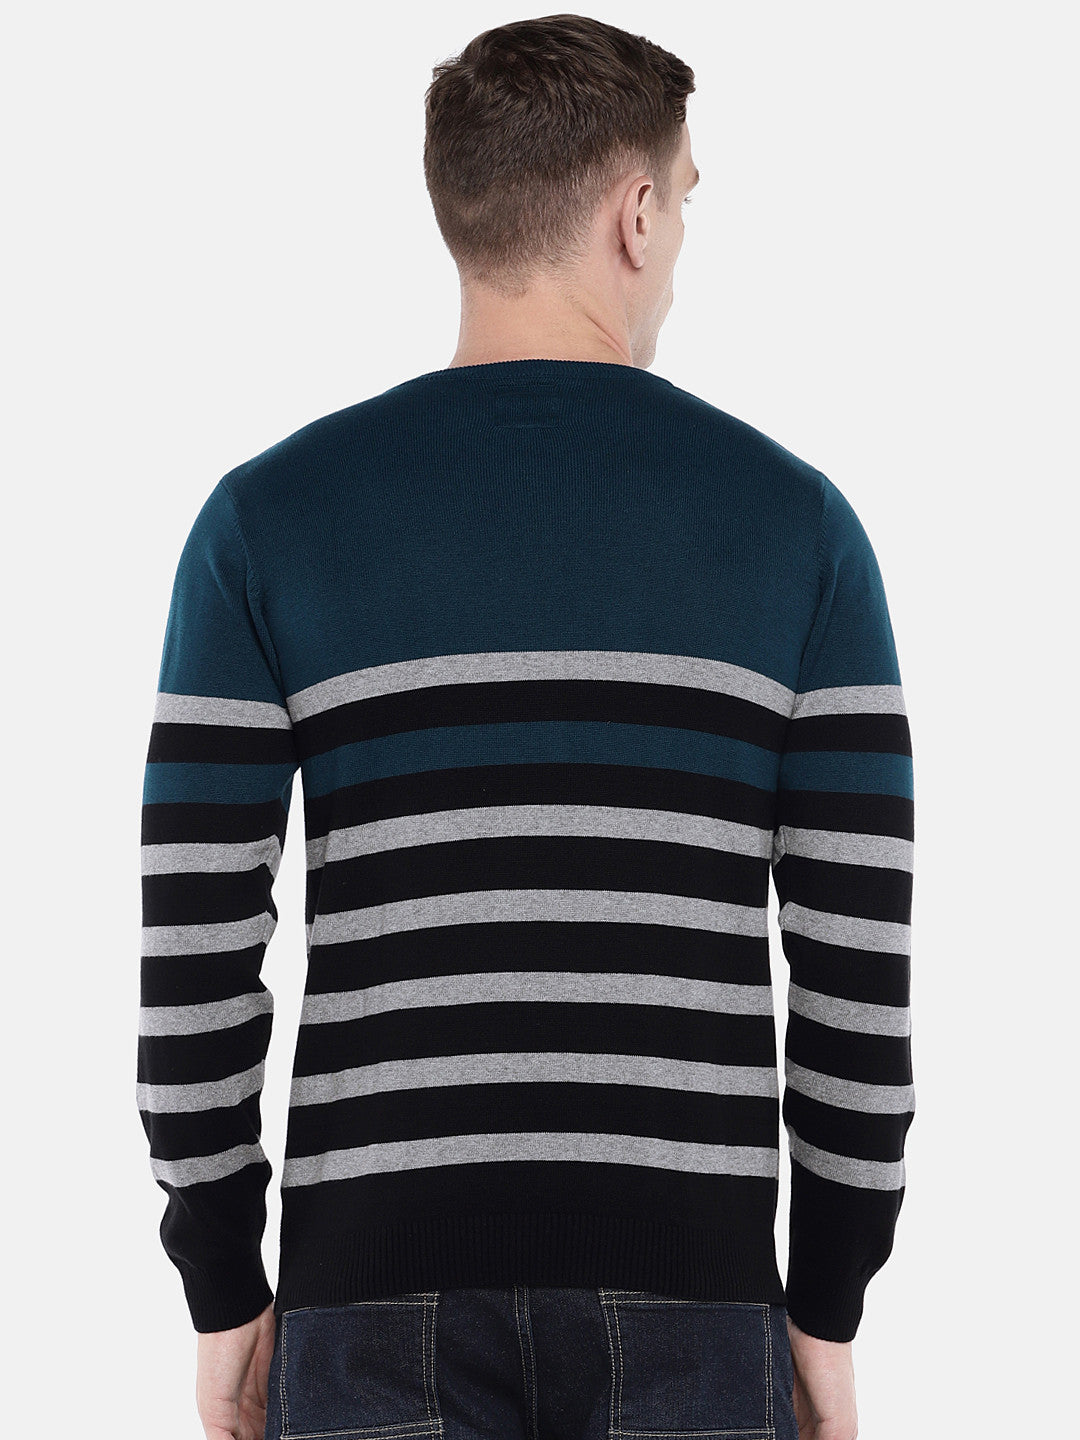 Green & Black Striped Sweater-3